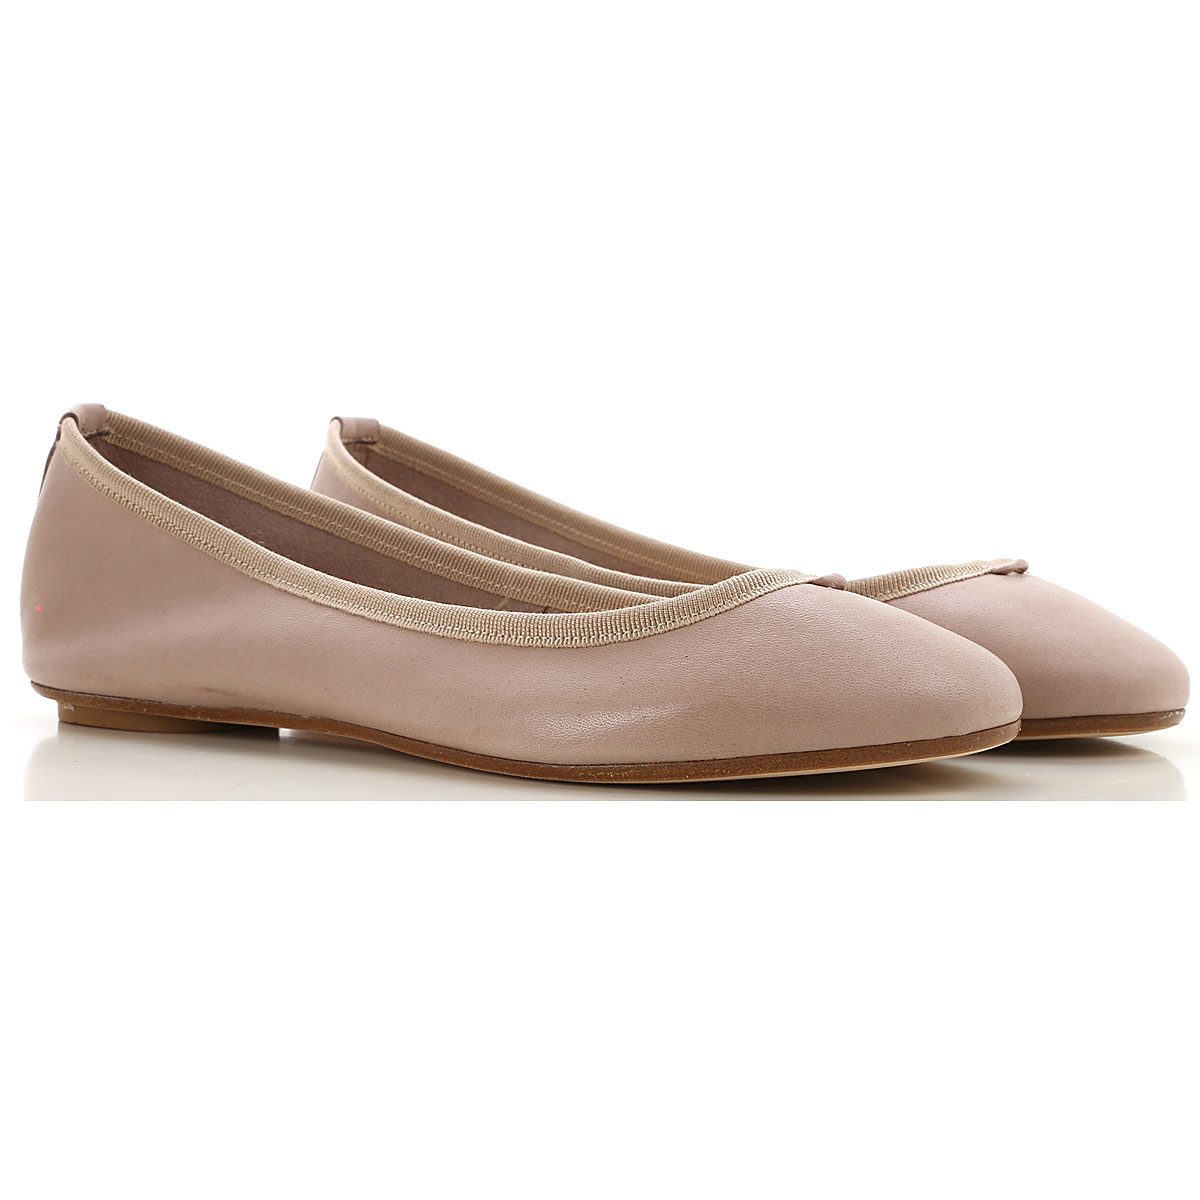 Anna Baiguera Ballet Flats Ballerina Shoes for Women On Sale, Natur, Leather, 2019, 6 8 9